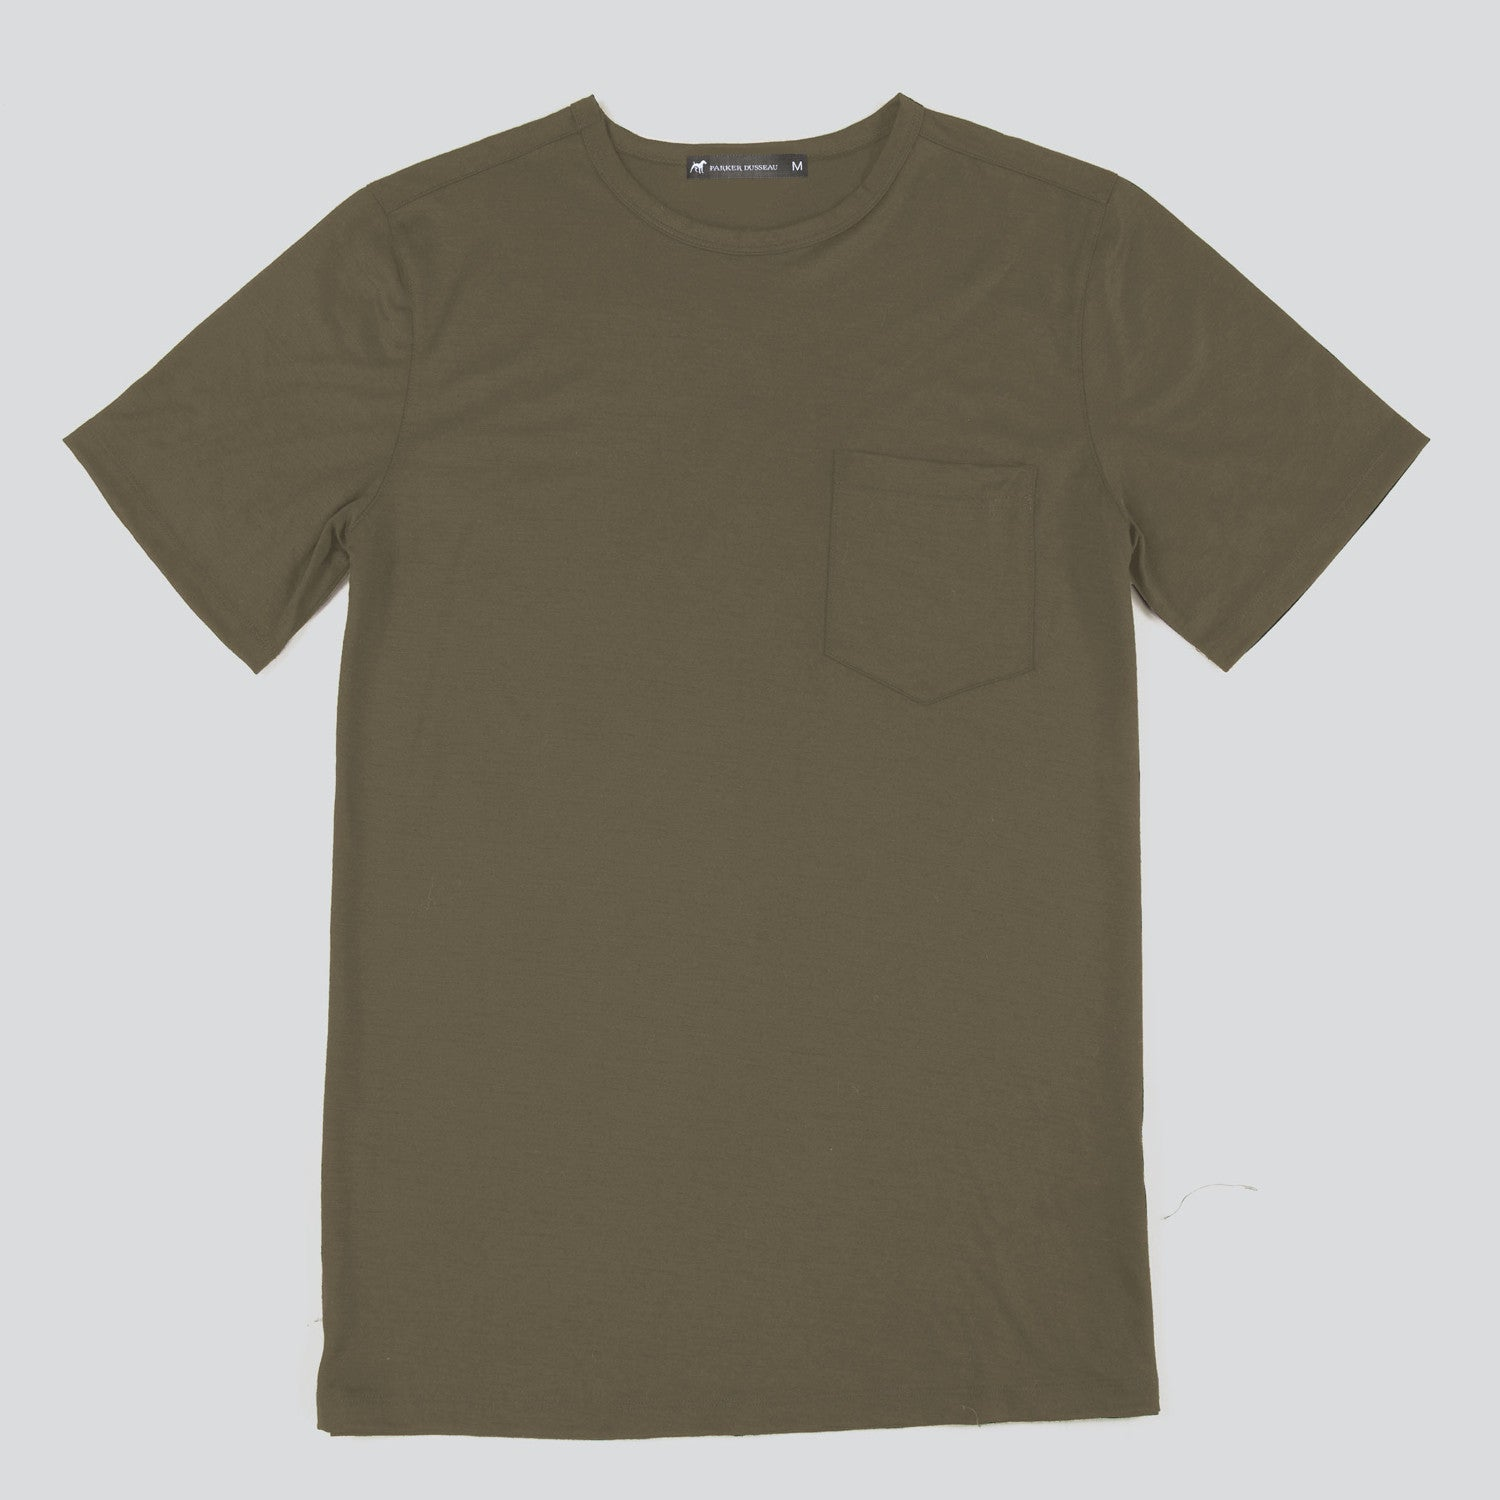 Merino Wool Single Pocket Tee - Olive Short Sleeve Merino Tee- Parker Dusseau : Functional Menswear Essentials for the Always Ready Lifestyle. Based in San Francisco, California